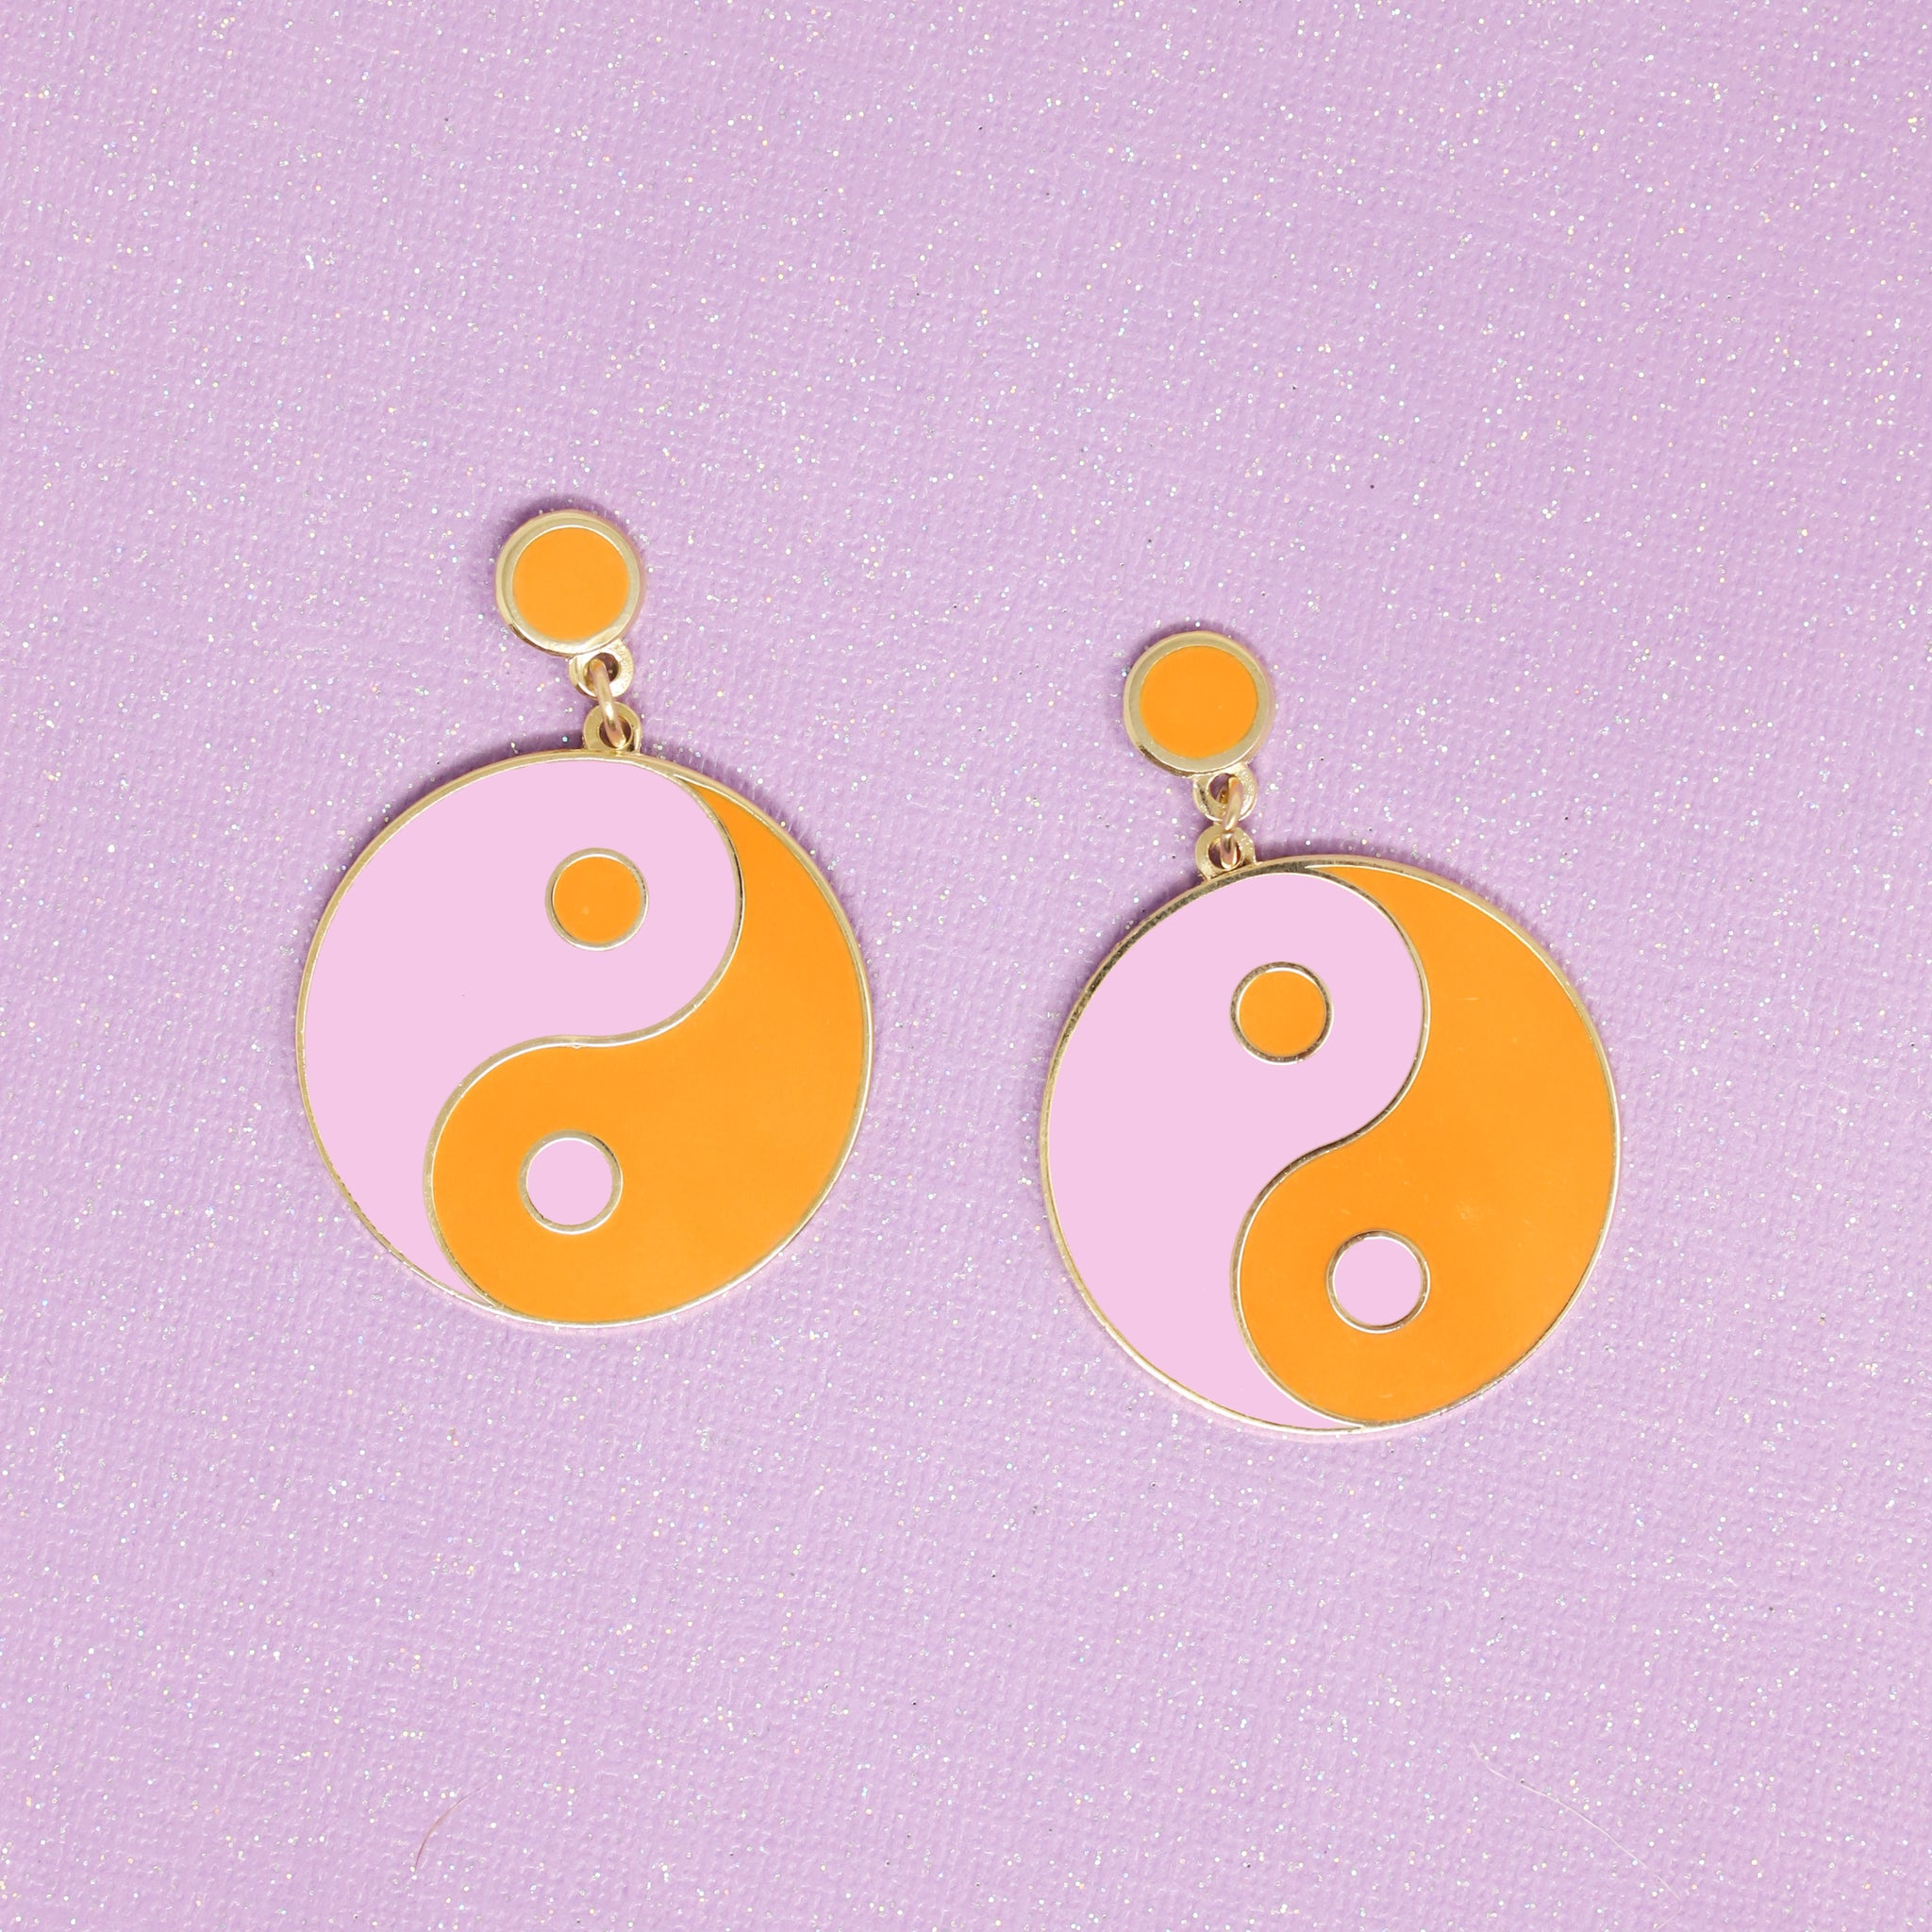 Ying Yang Earrings